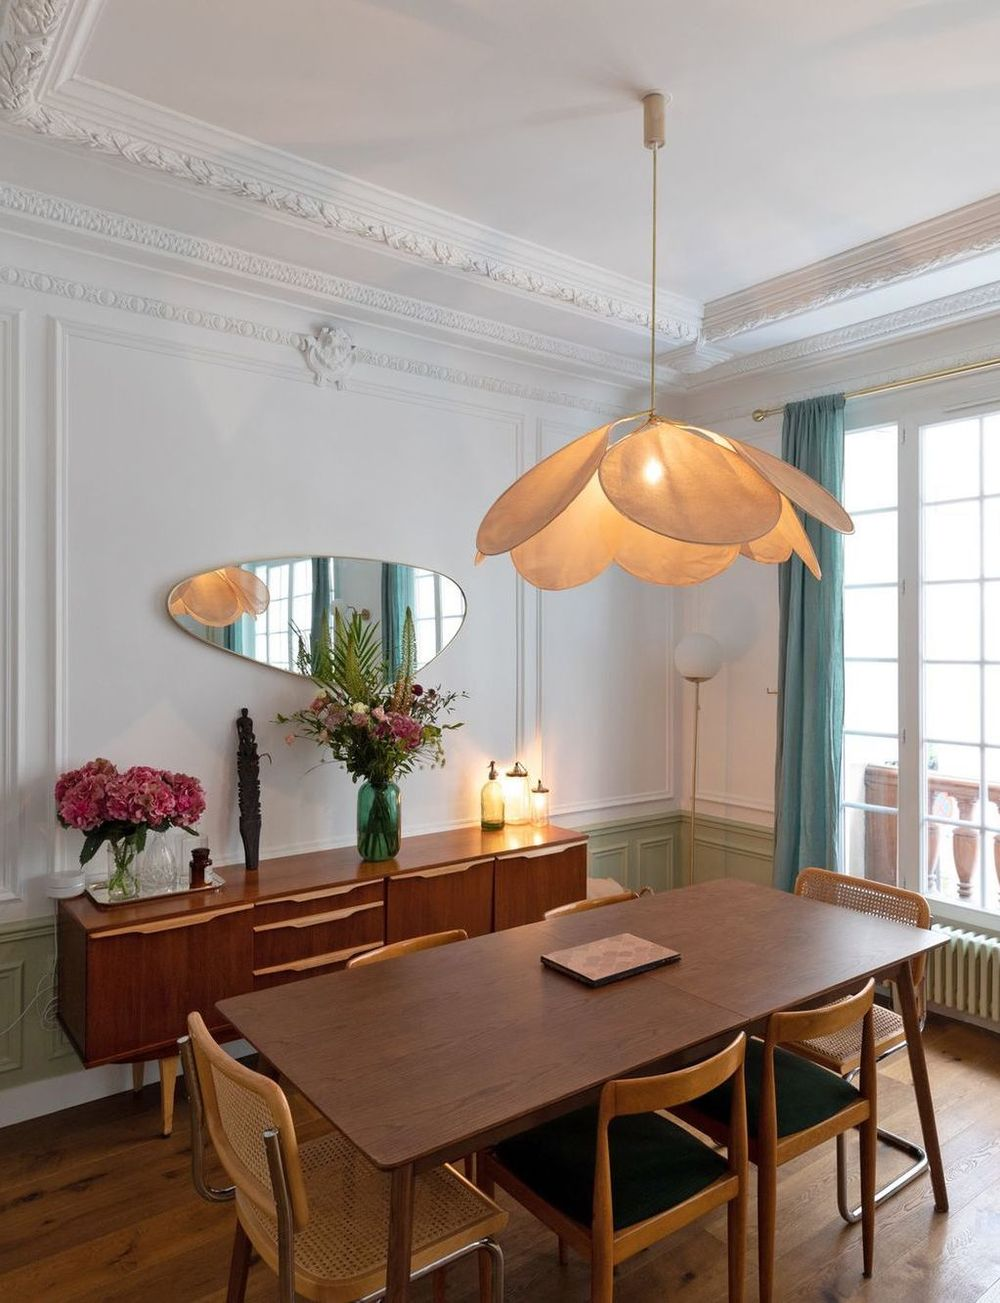 Parisian dining room with mid-century modern table, chairs and credenza via Charlotte Fequet CoteMaison